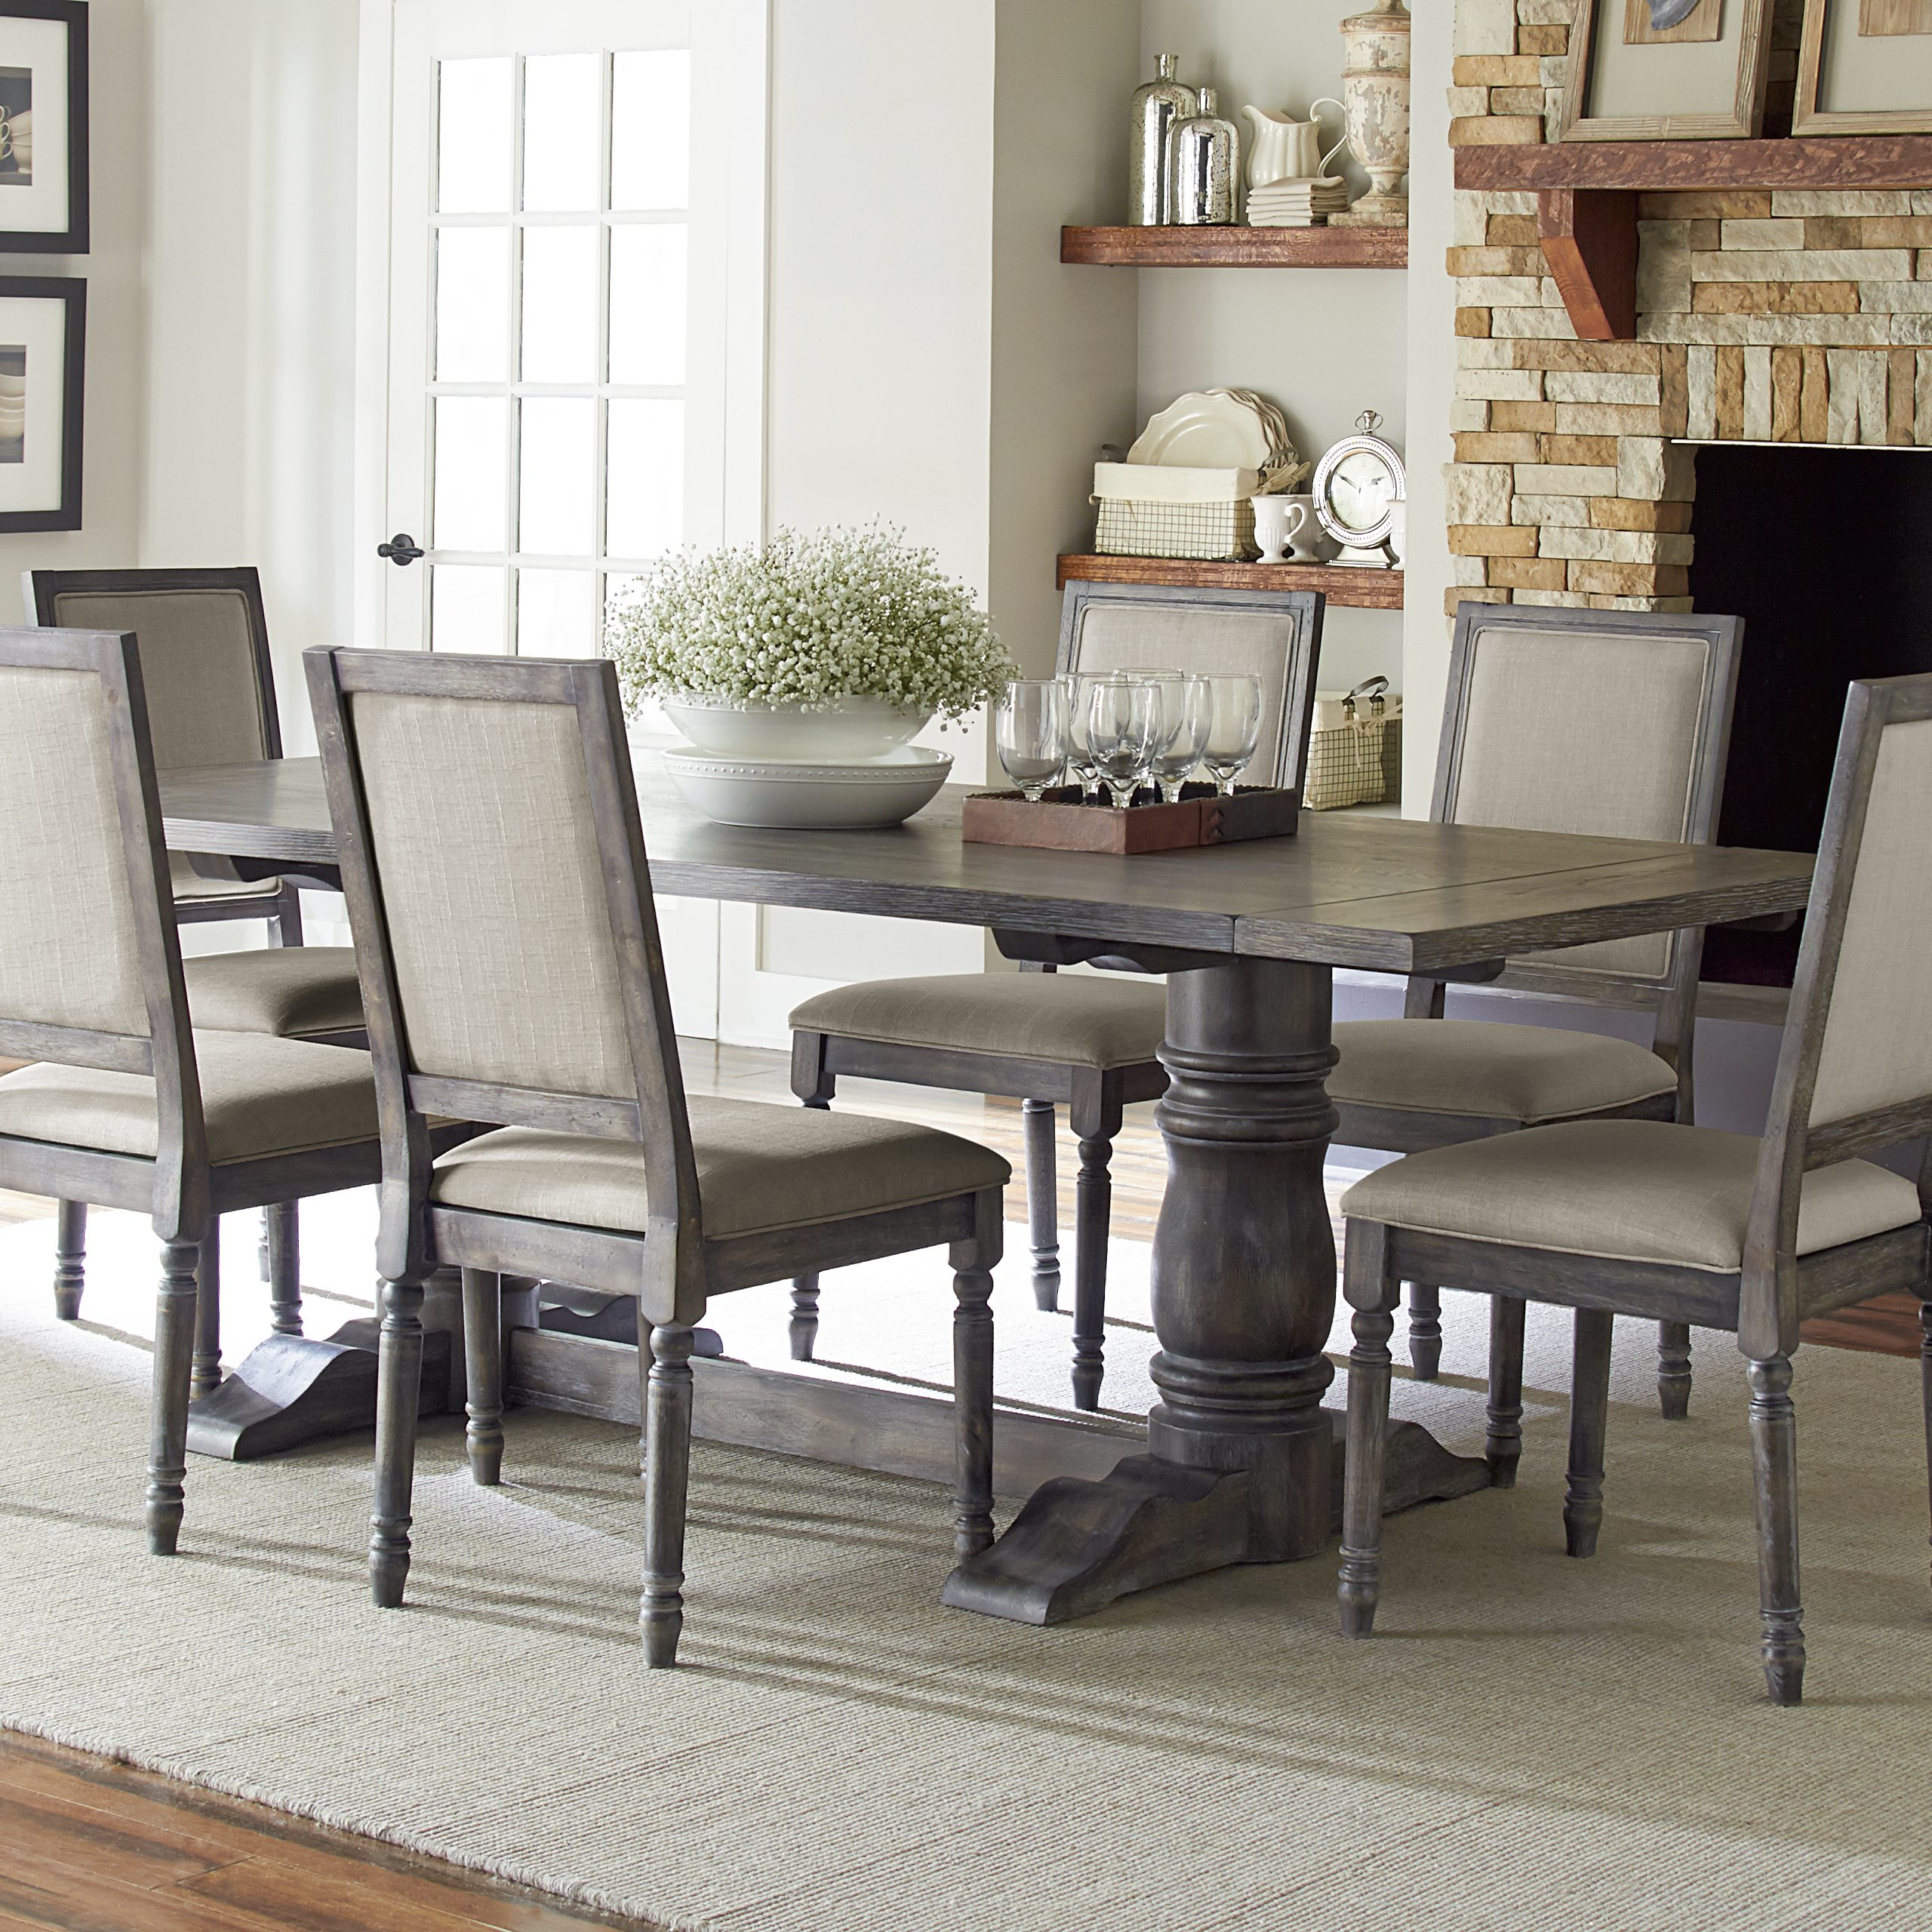 Trendy Modern Rustic Dining Table Set (View 2 of 21)